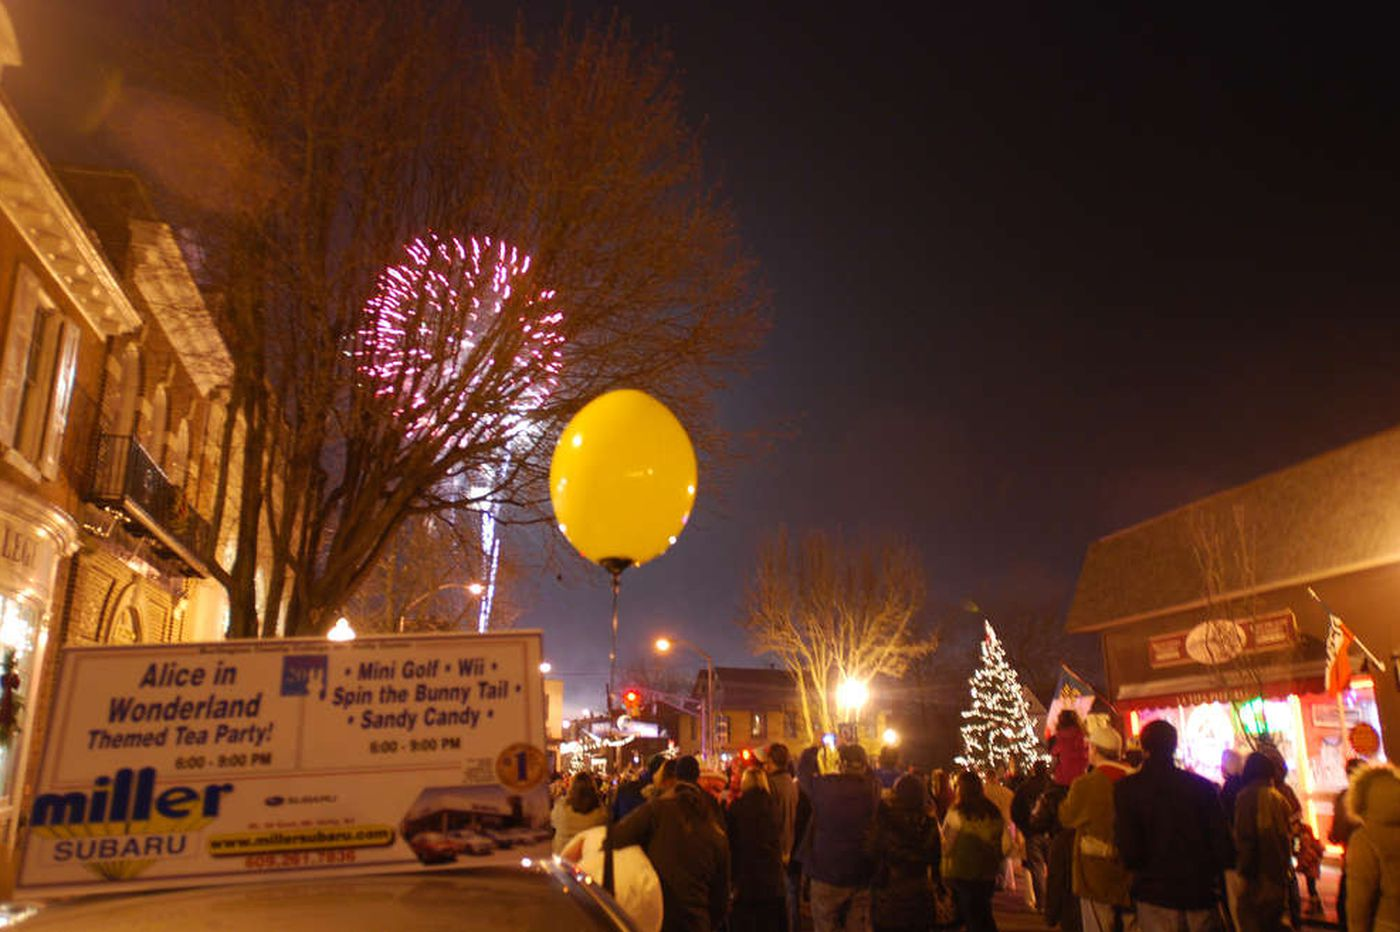 Burlington County celebration to ring in 2012